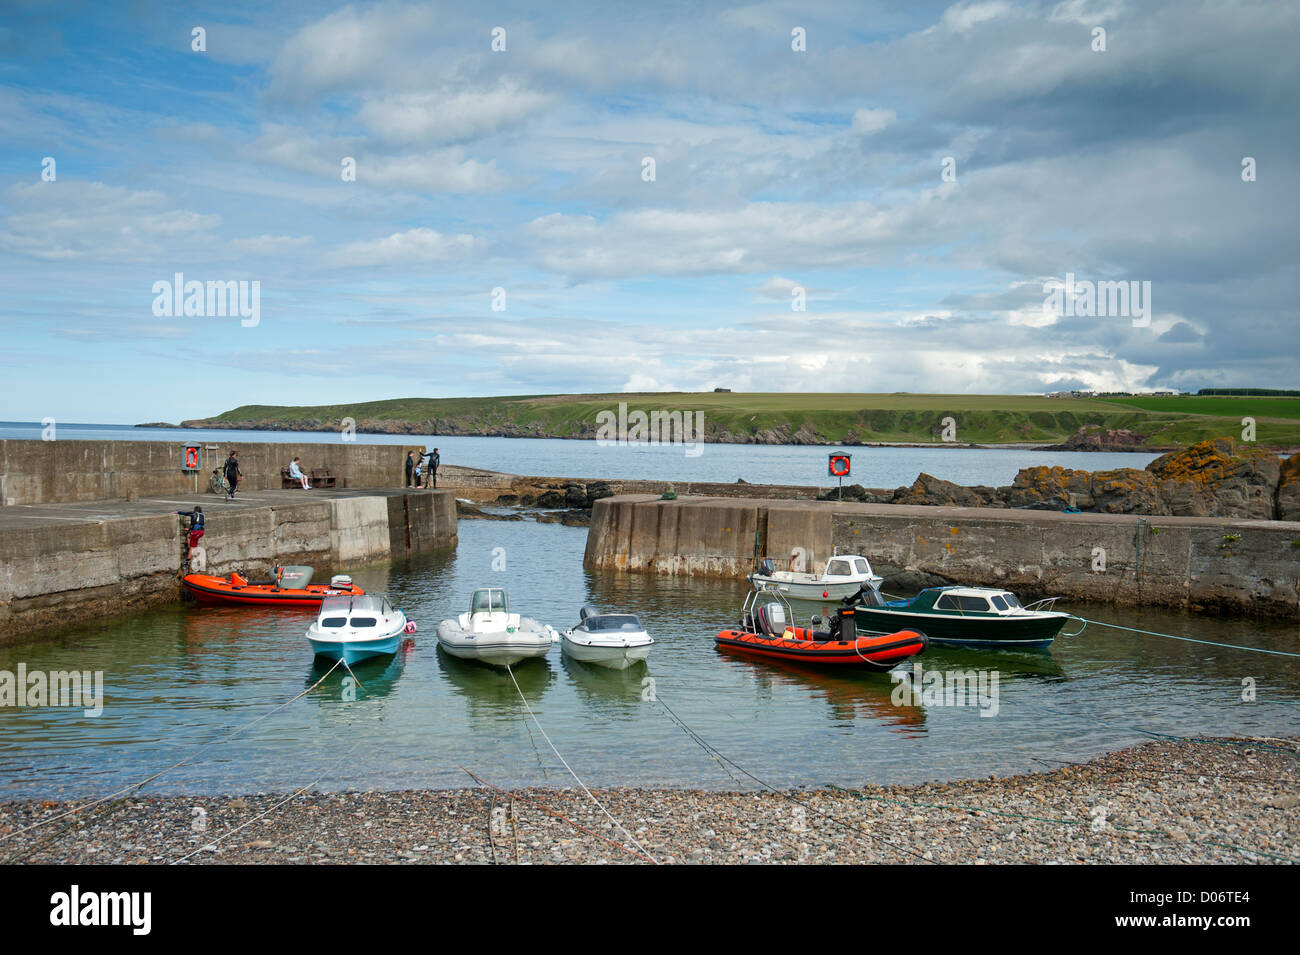 Sandend Harbour on the North East coast of Moray and Aberdeenshire. - Stock Image